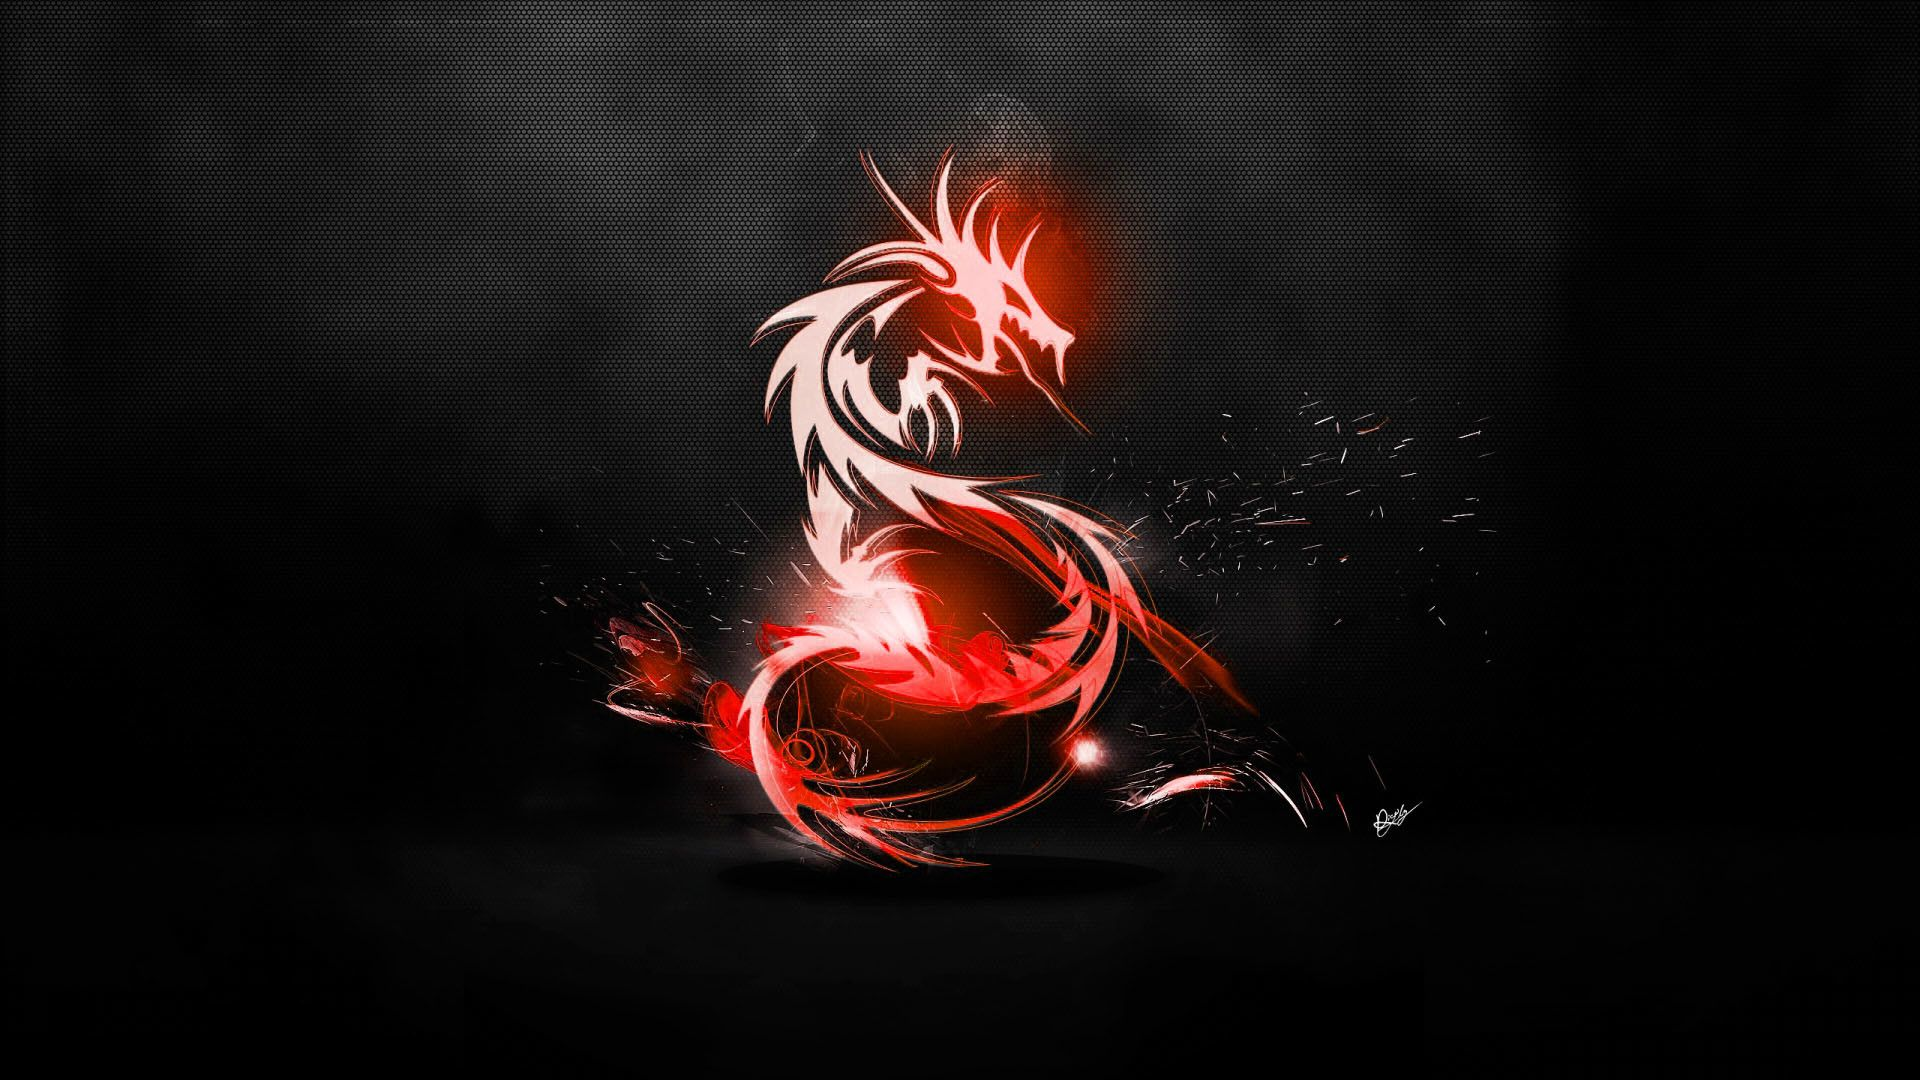 1920x1080 Red Dragon Black Abstract High Definition